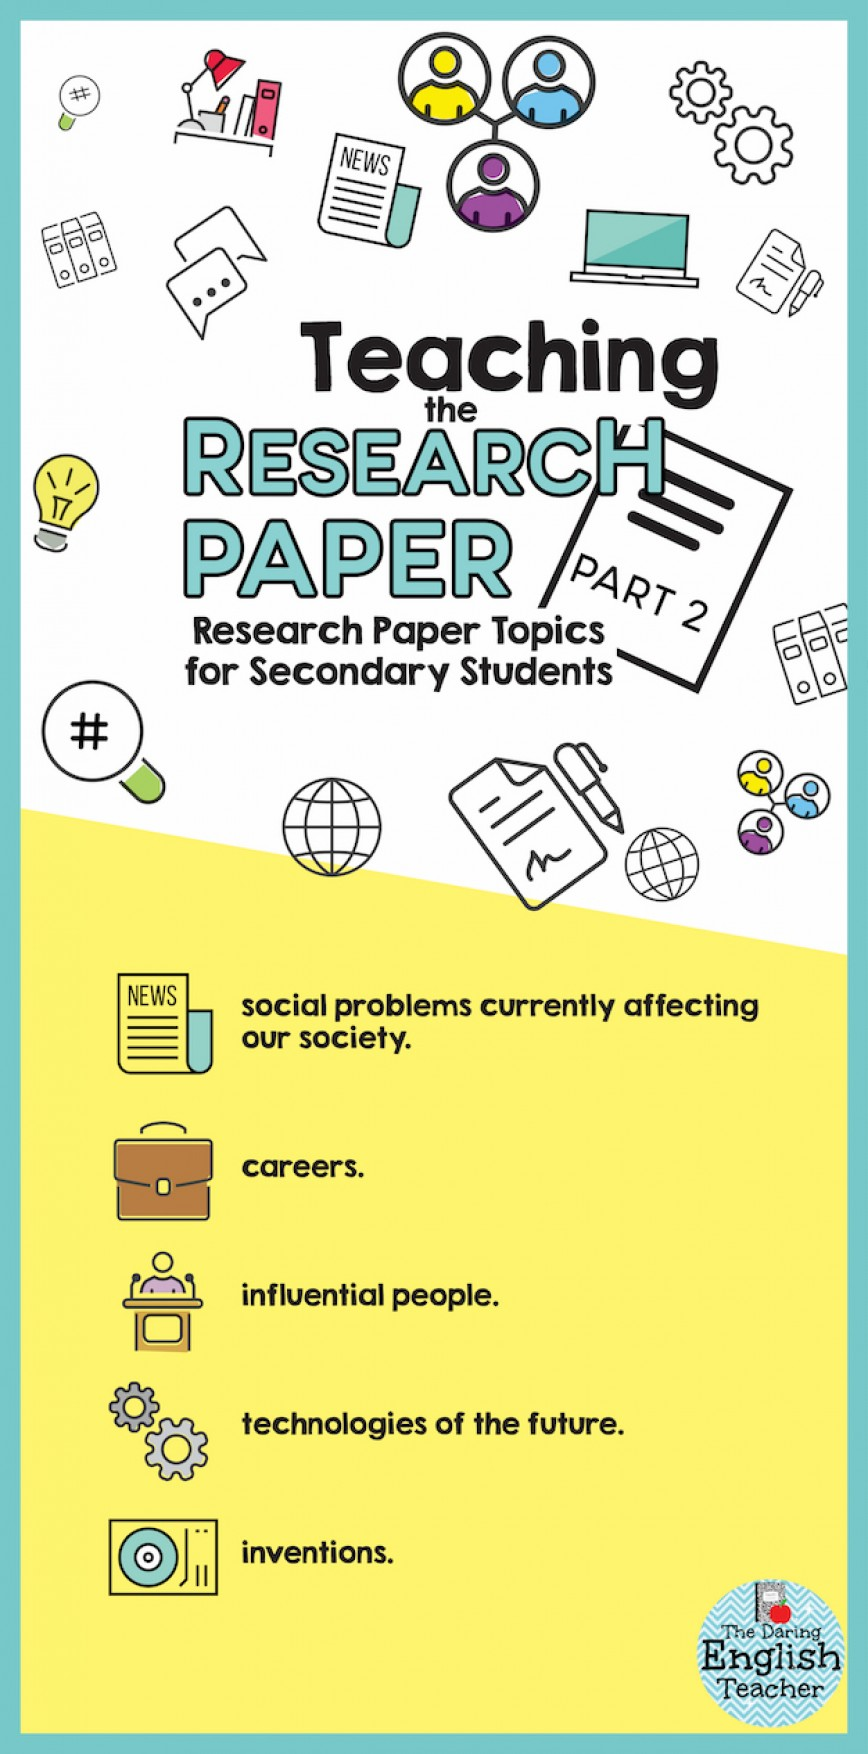 020 Infographic2bp22b2 Research Paper Topic For Unusual A Topics In Sociology On Frankenstein Education The Philippines 868